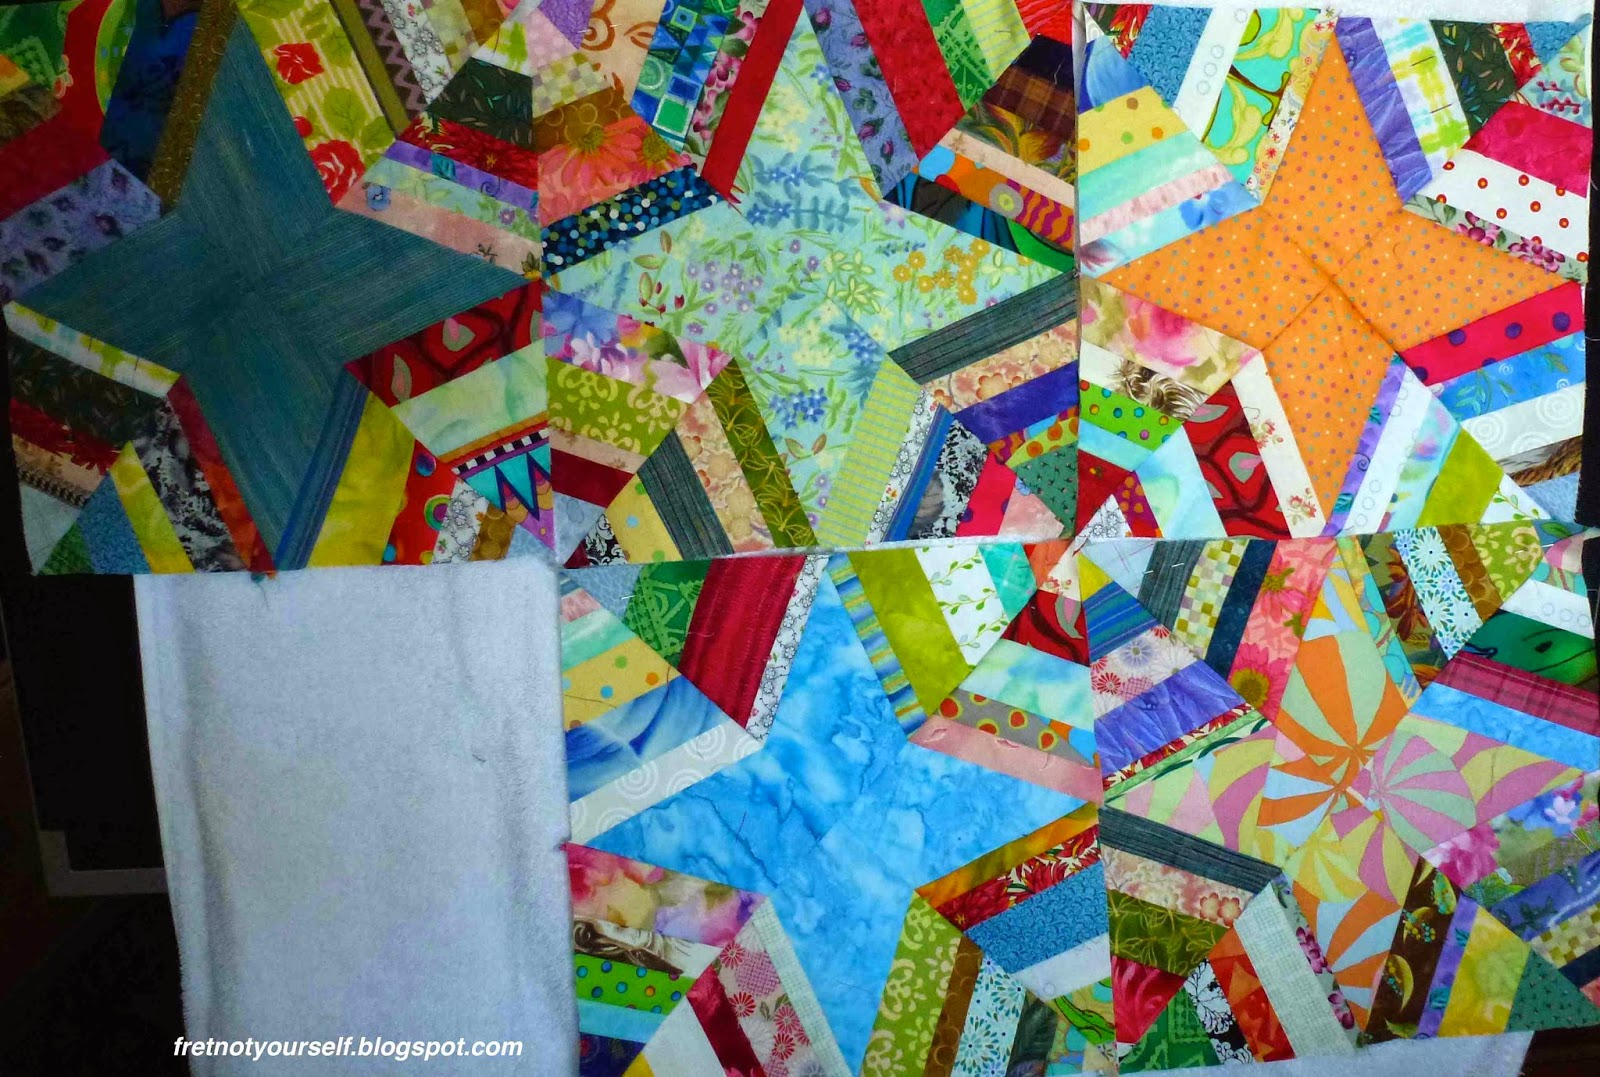 Spiderweb quilt blocks made of strings on blue, green, orange background stars.